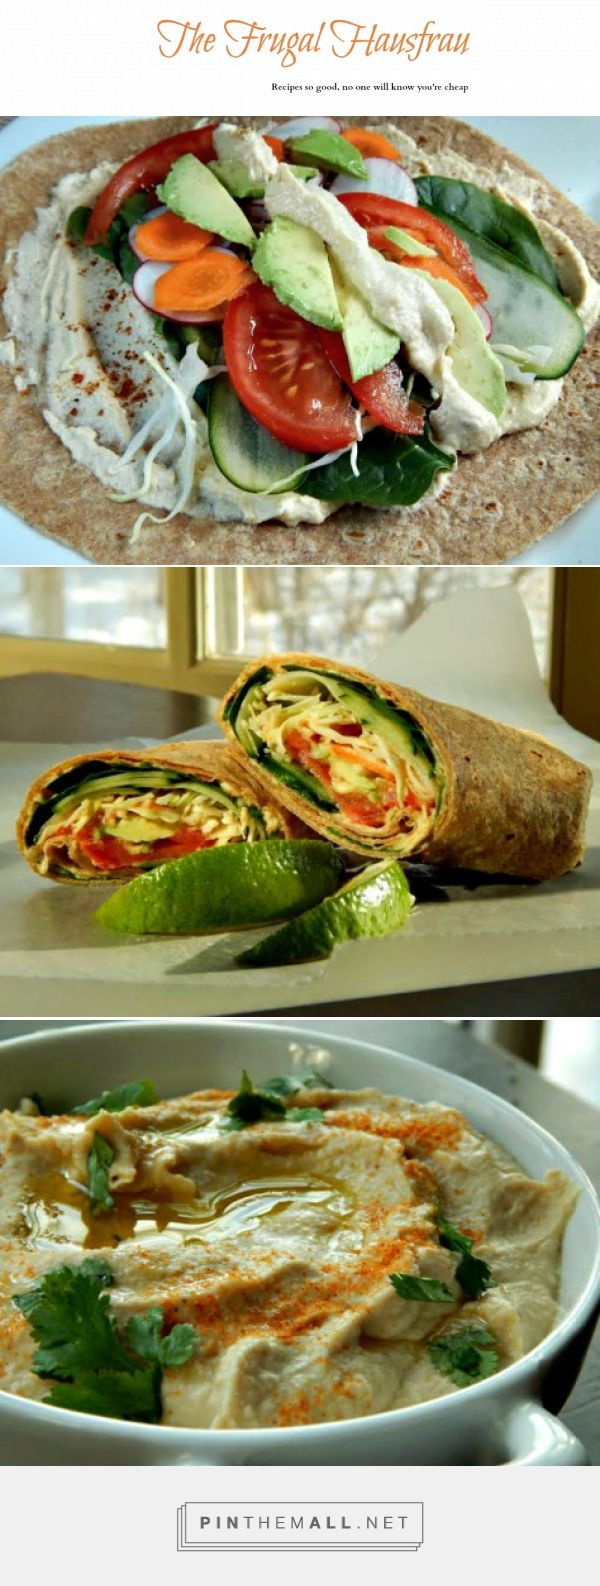 Make Your Own Hummus & Vegetarian Wraps - All the tips and tricks for the BEST hummus and how to construct a great wrap that will hold up till lunch! http://frugalhausfrau.com/2015/02/13/make-your-own-hummus-vegetarian-wraps/